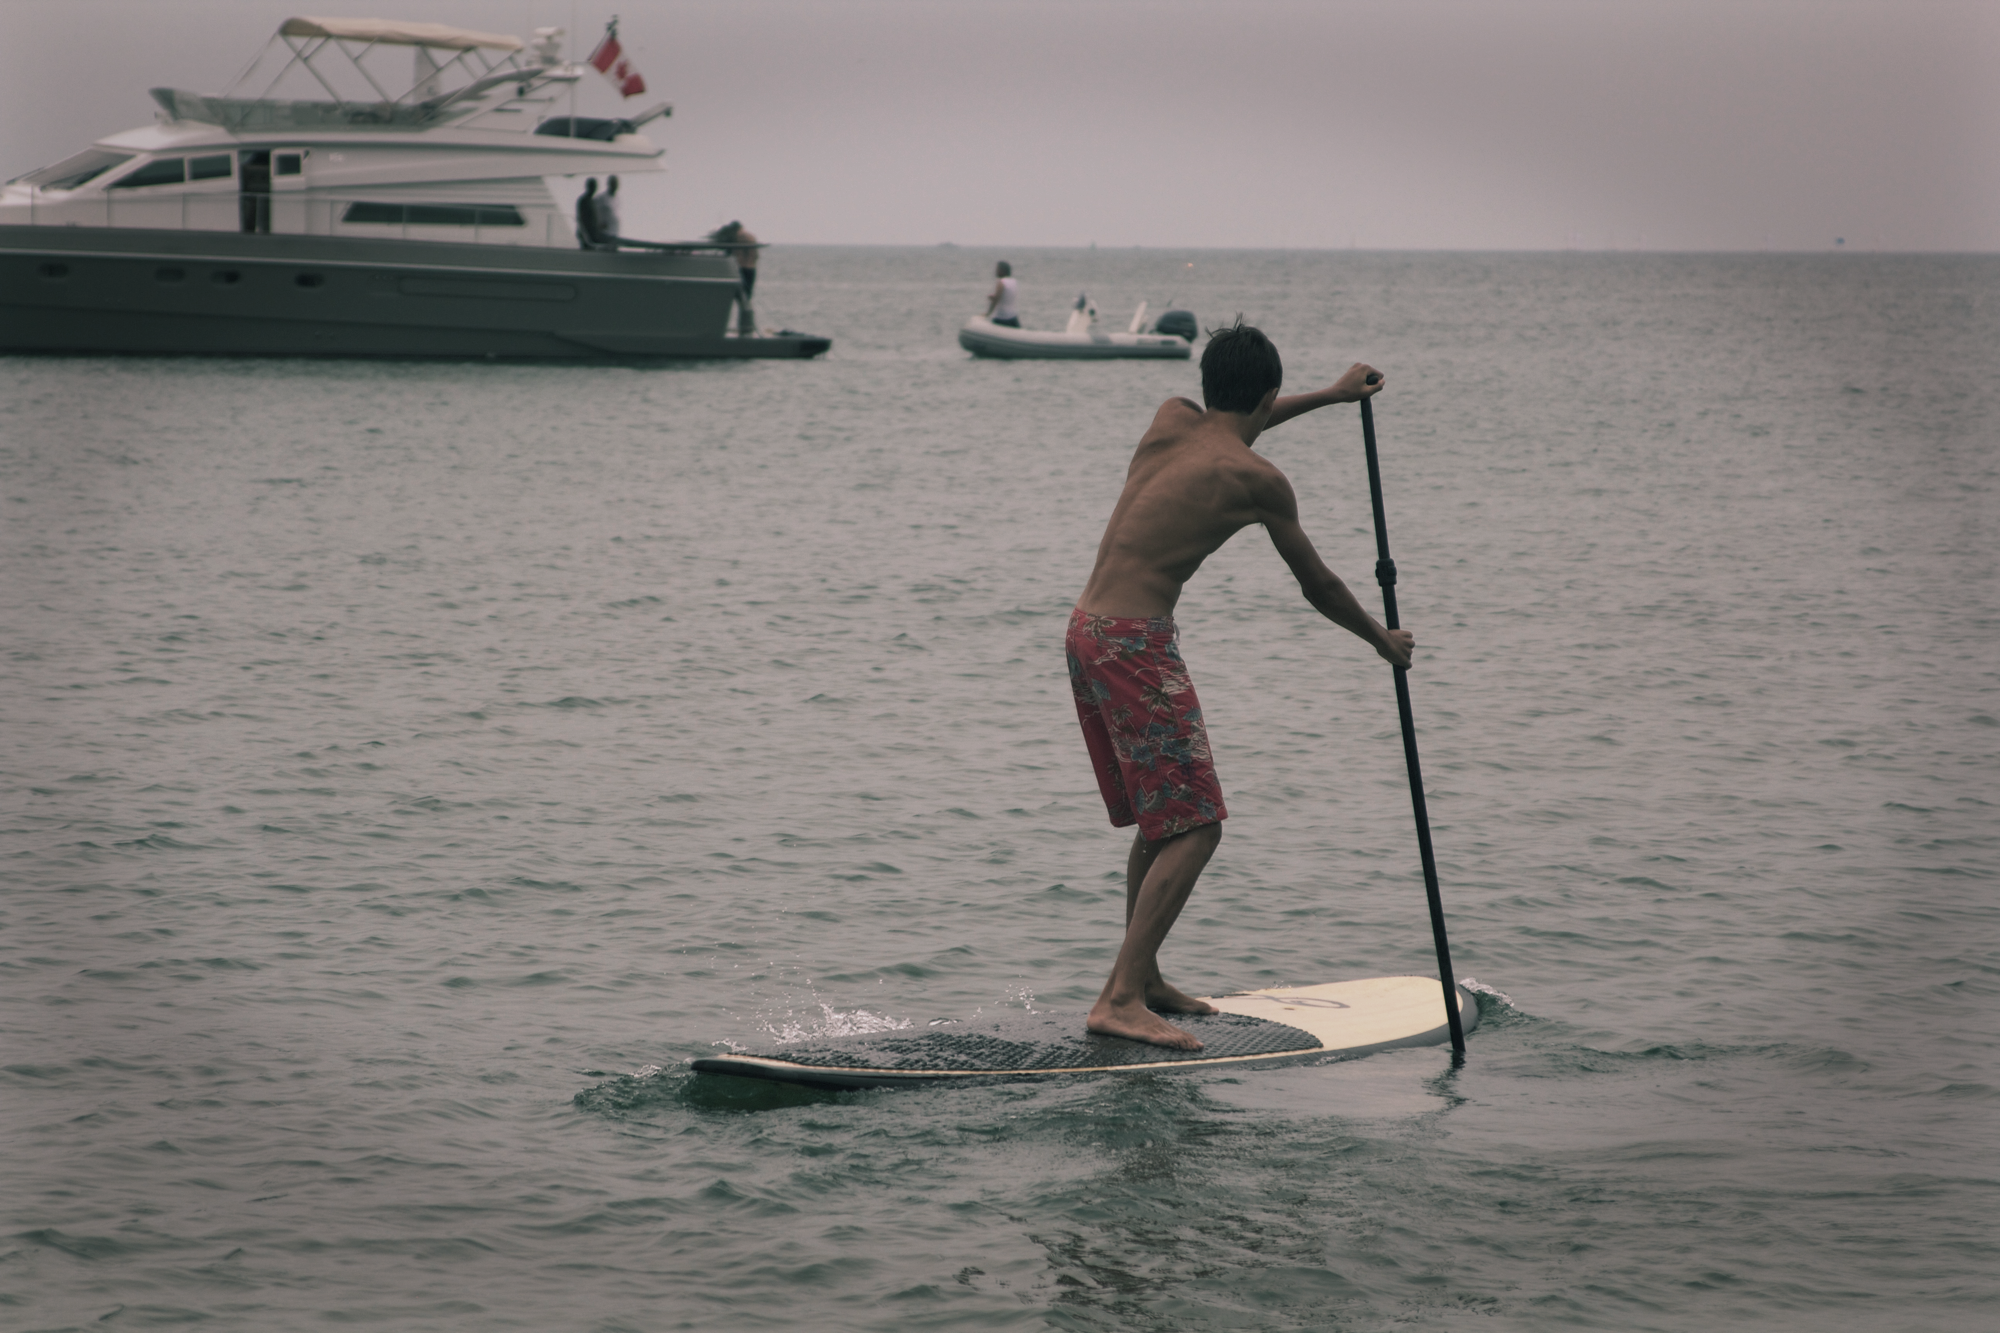 Stand-up-paddleboarding at Ward's Island beach. Summer, 2013. Photo by Dylan Neild.